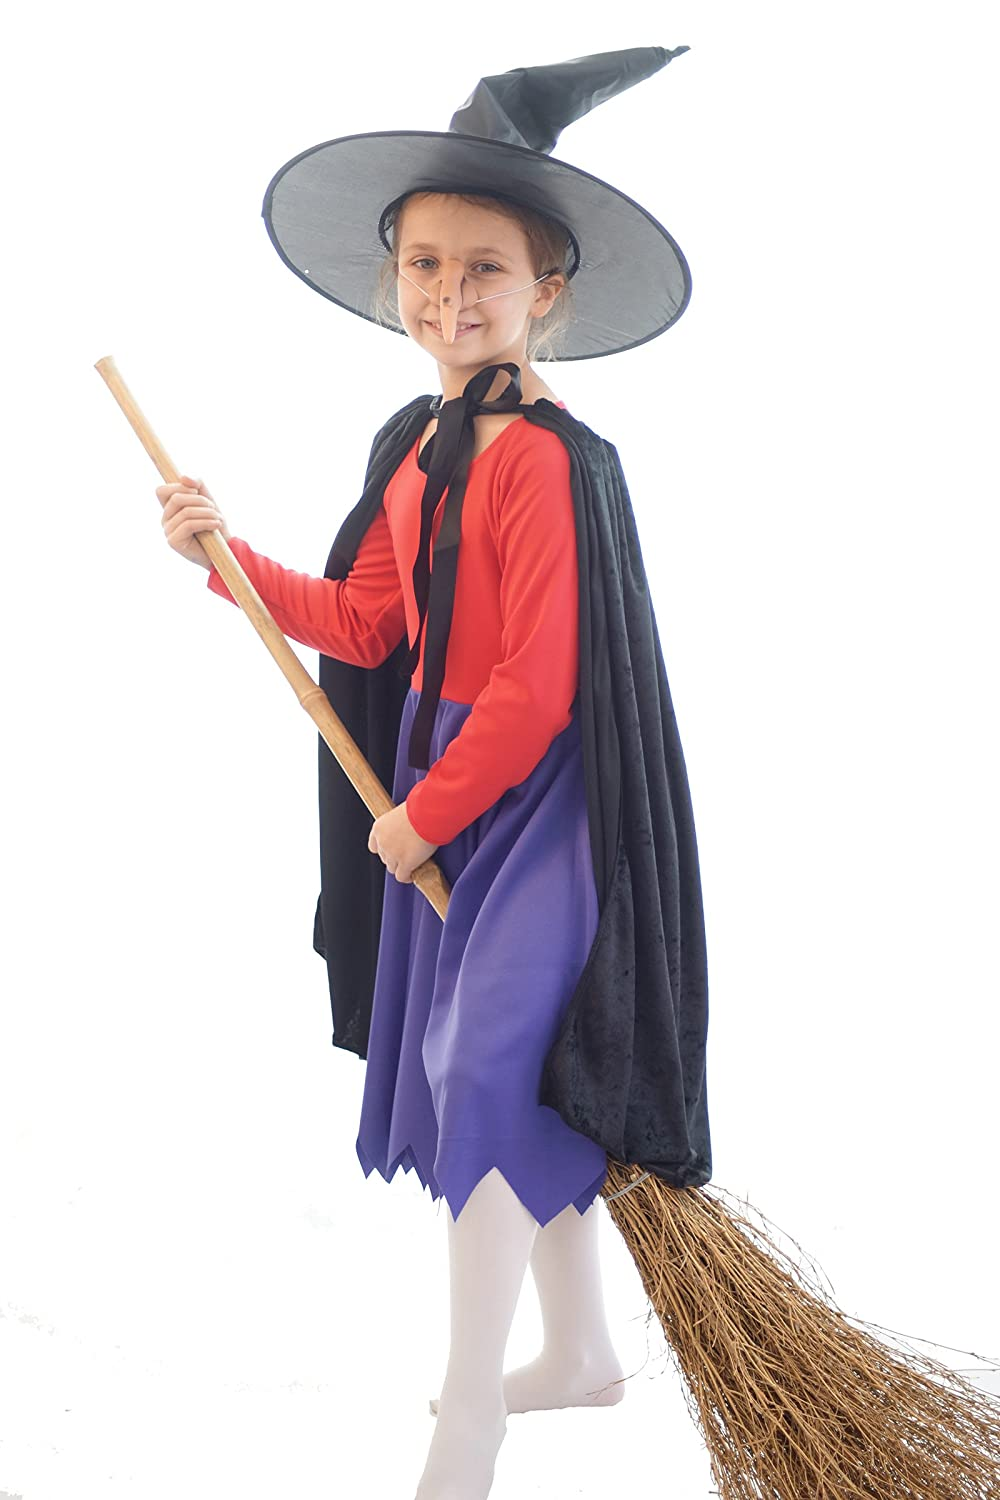 Amazon.com CL COSTUMES World Book Day-Halloween-Fancy Dress-Witch- Room On The Broom Witch Costume - All Childrenu0027s Sizeu0027s Clothing  sc 1 st  Amazon.com & Amazon.com: CL COSTUMES World Book Day-Halloween-Fancy Dress-Witch ...